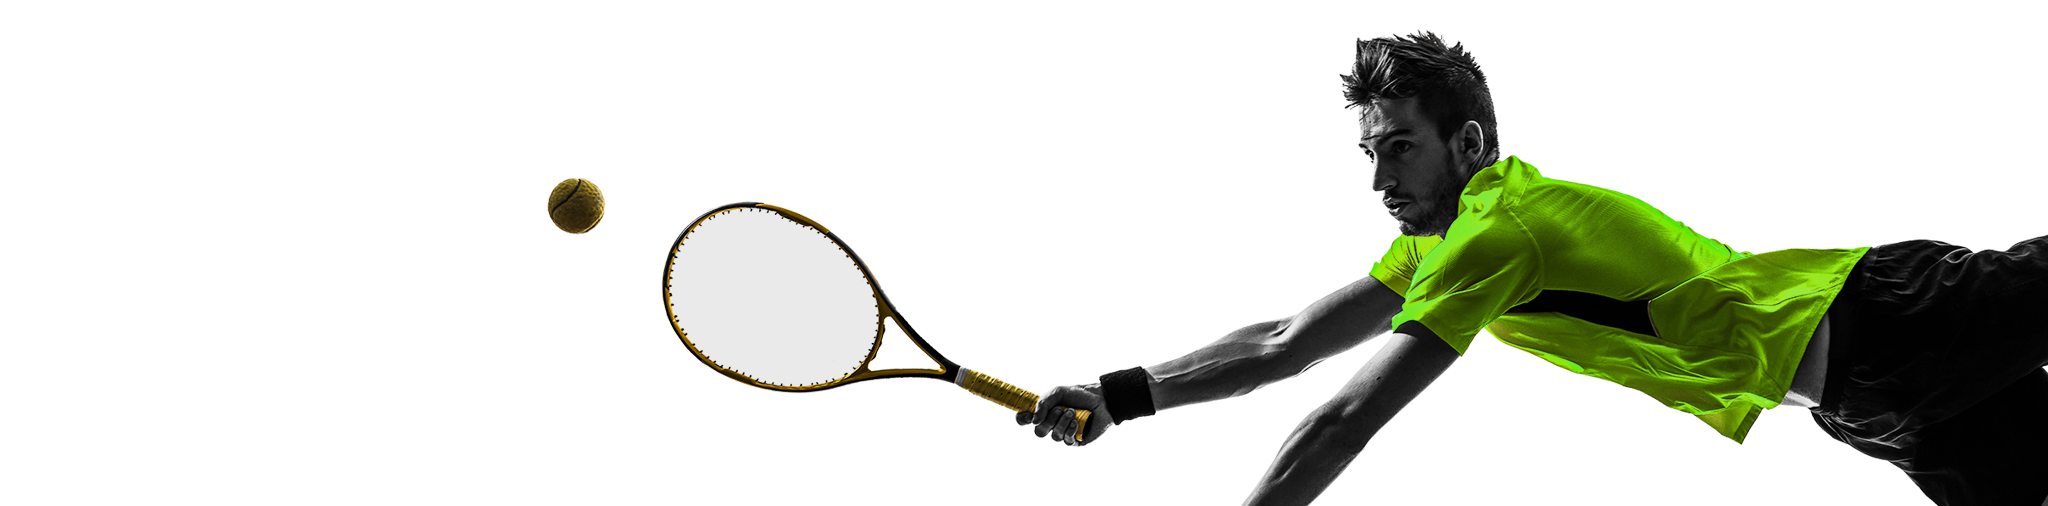 https://oxigeno.bold-themes.com/tennis/wp-content/uploads/sites/4/2017/12/inner_player.png